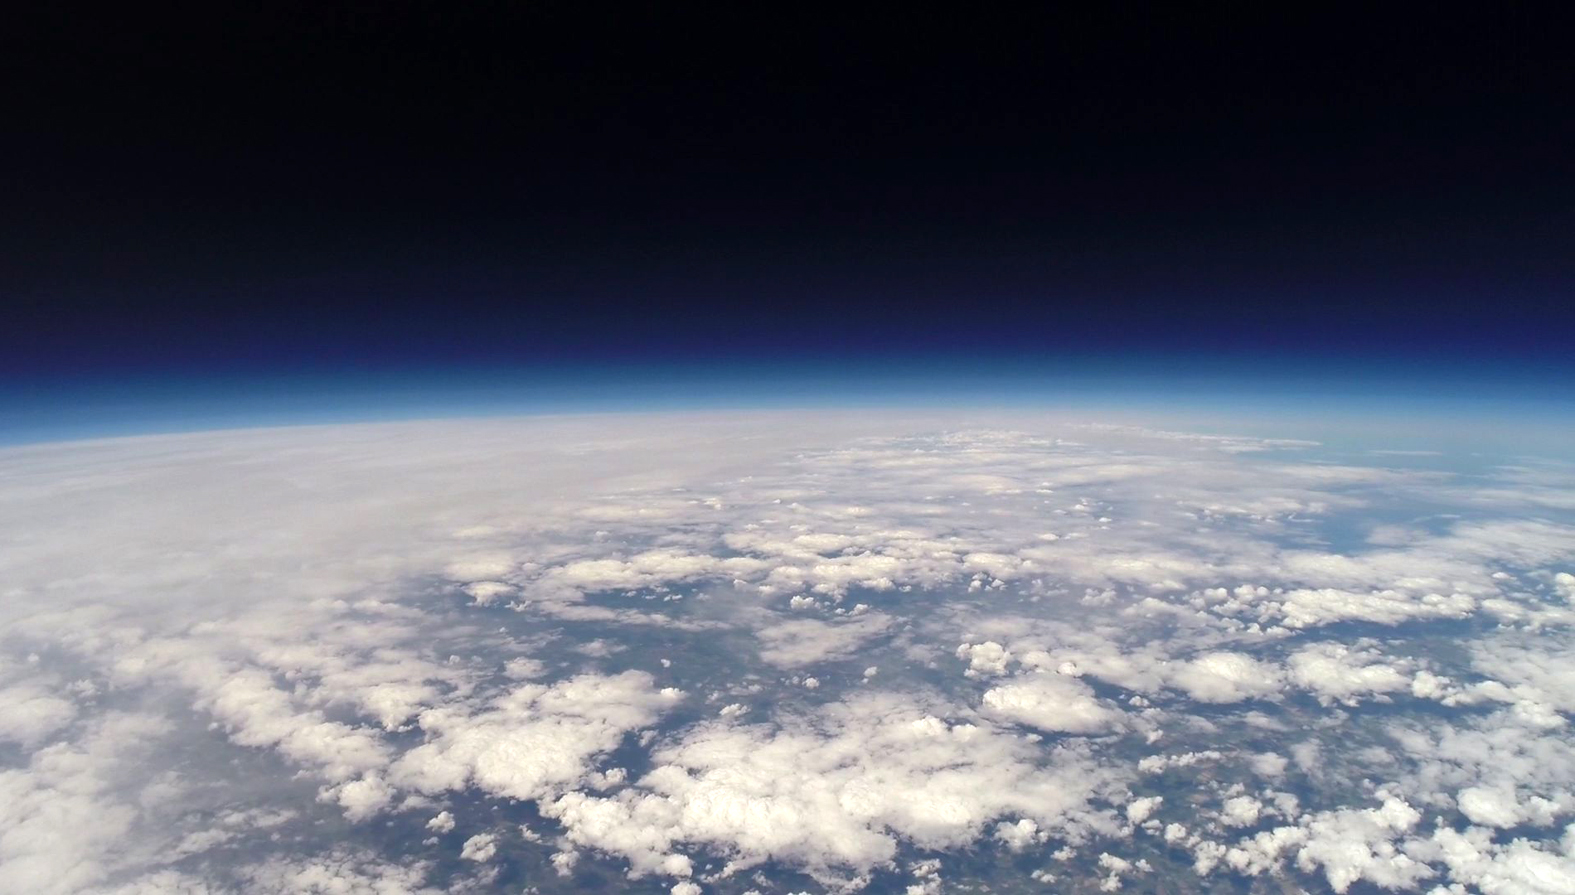 Video shows incredible images of Earth from Bolton School's space balloon